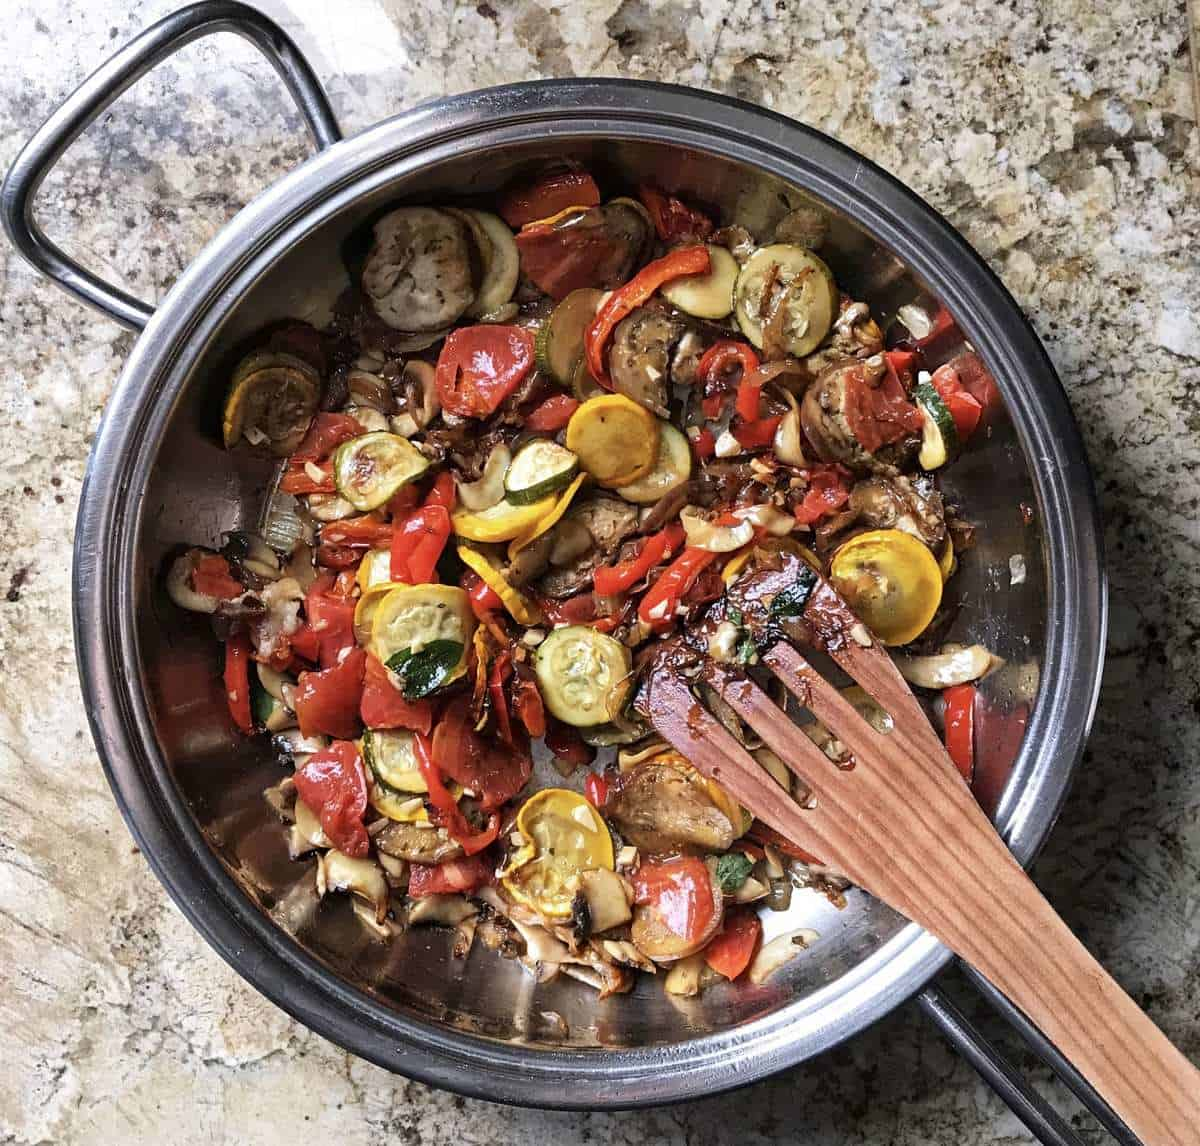 The addition of grilled vegetables to the pan of sauteed shallots and mushrooms.